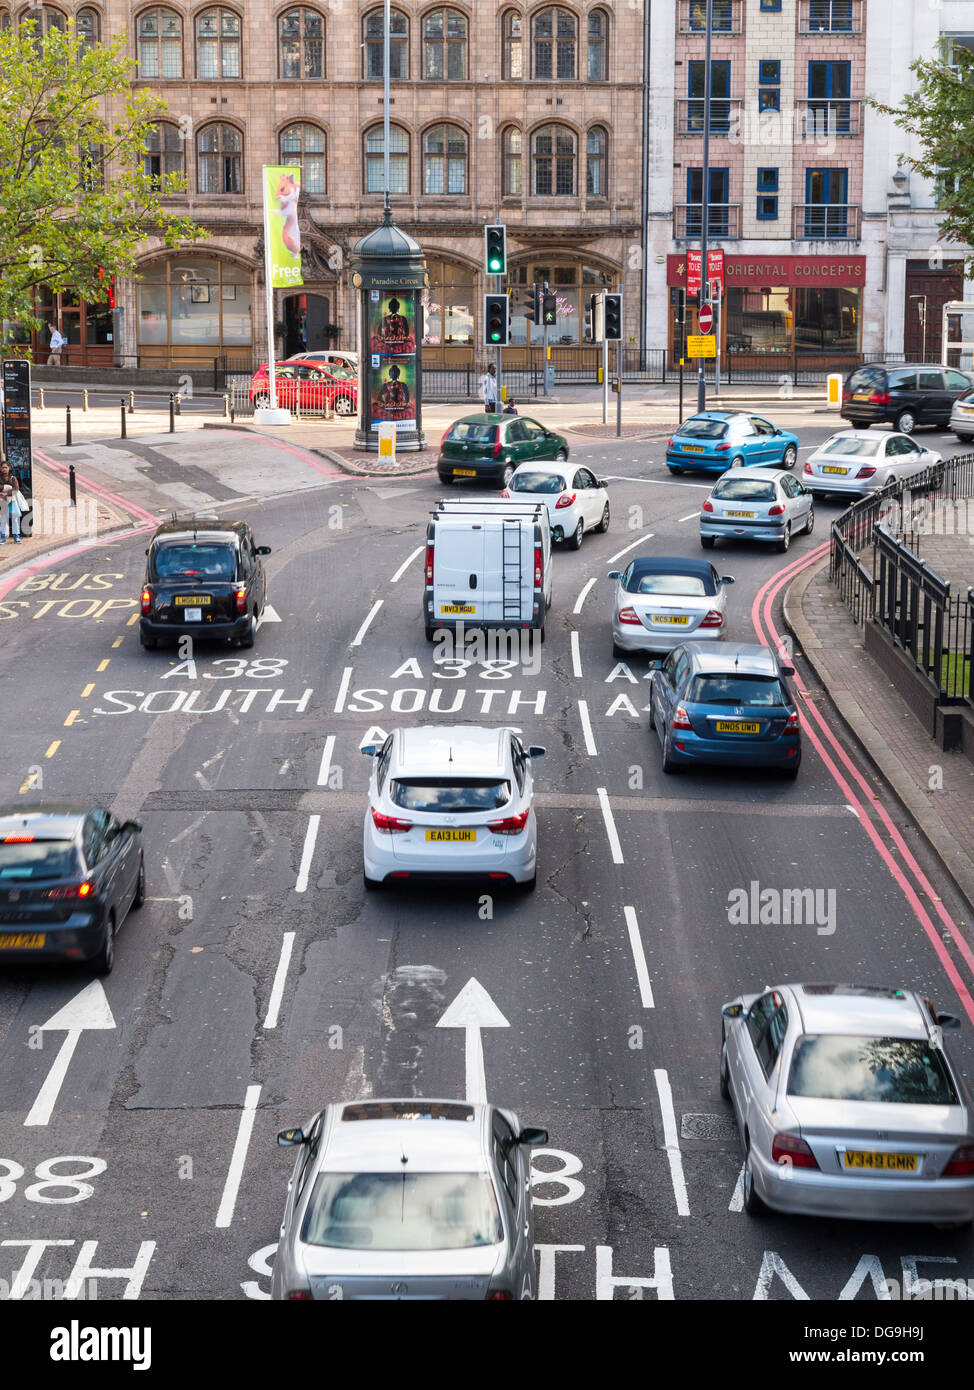 Road junction with three lanes and traffic in Birmingham, Midlands, UK - Stock Image